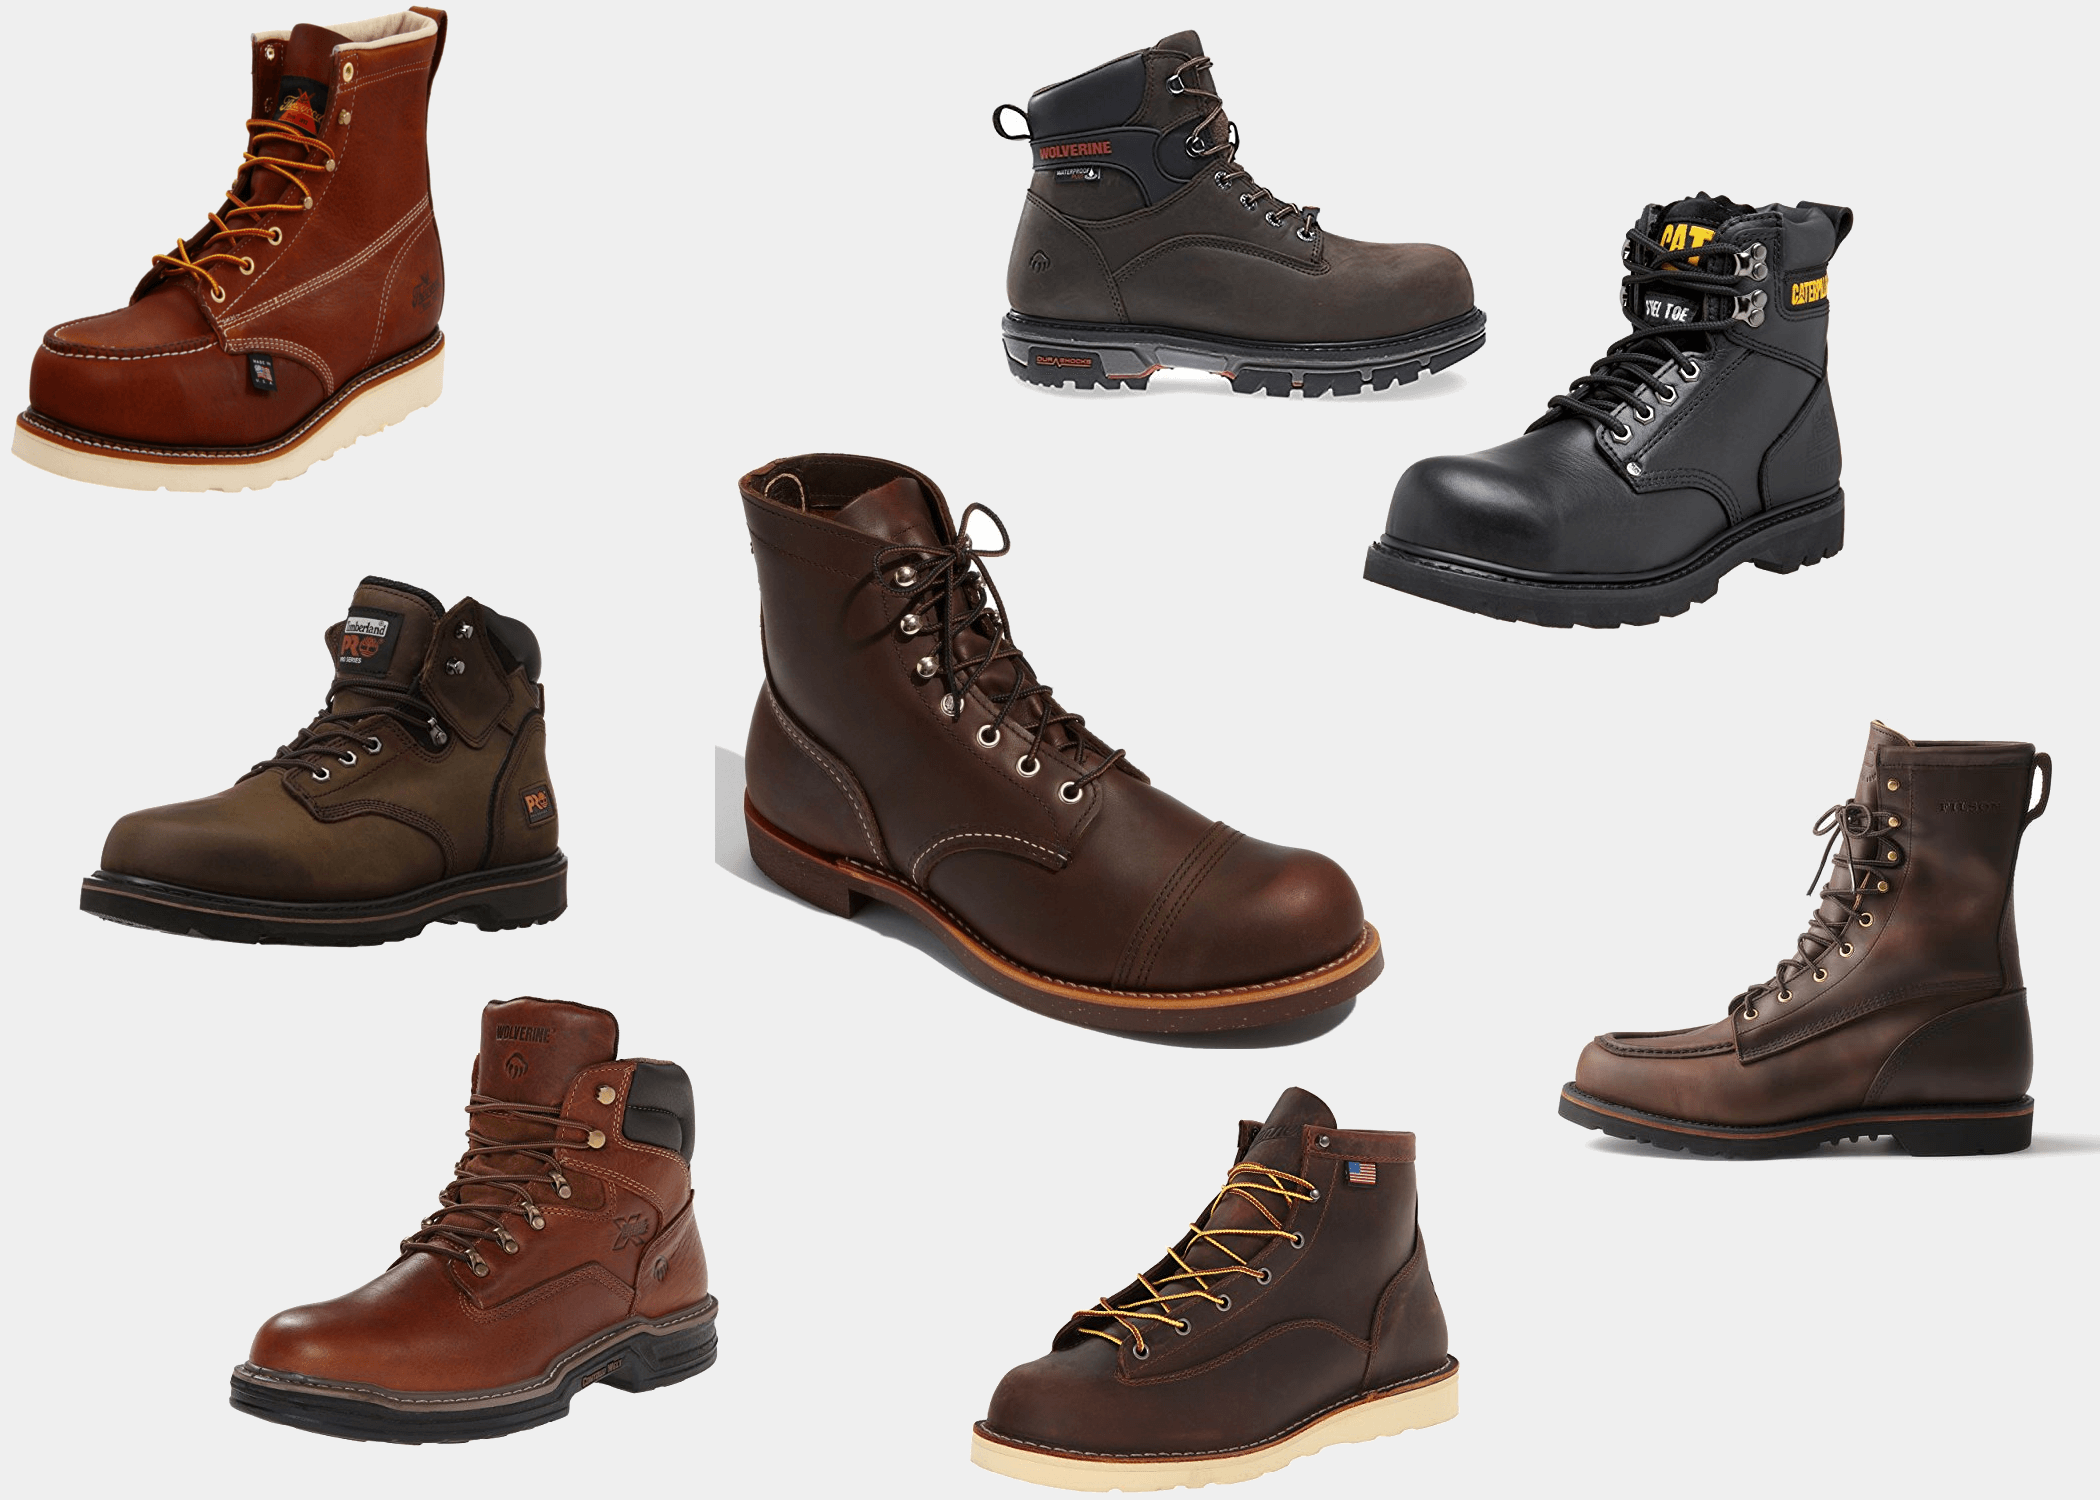 0d61d387849 The 11 Best Work Boots for Men | Improb